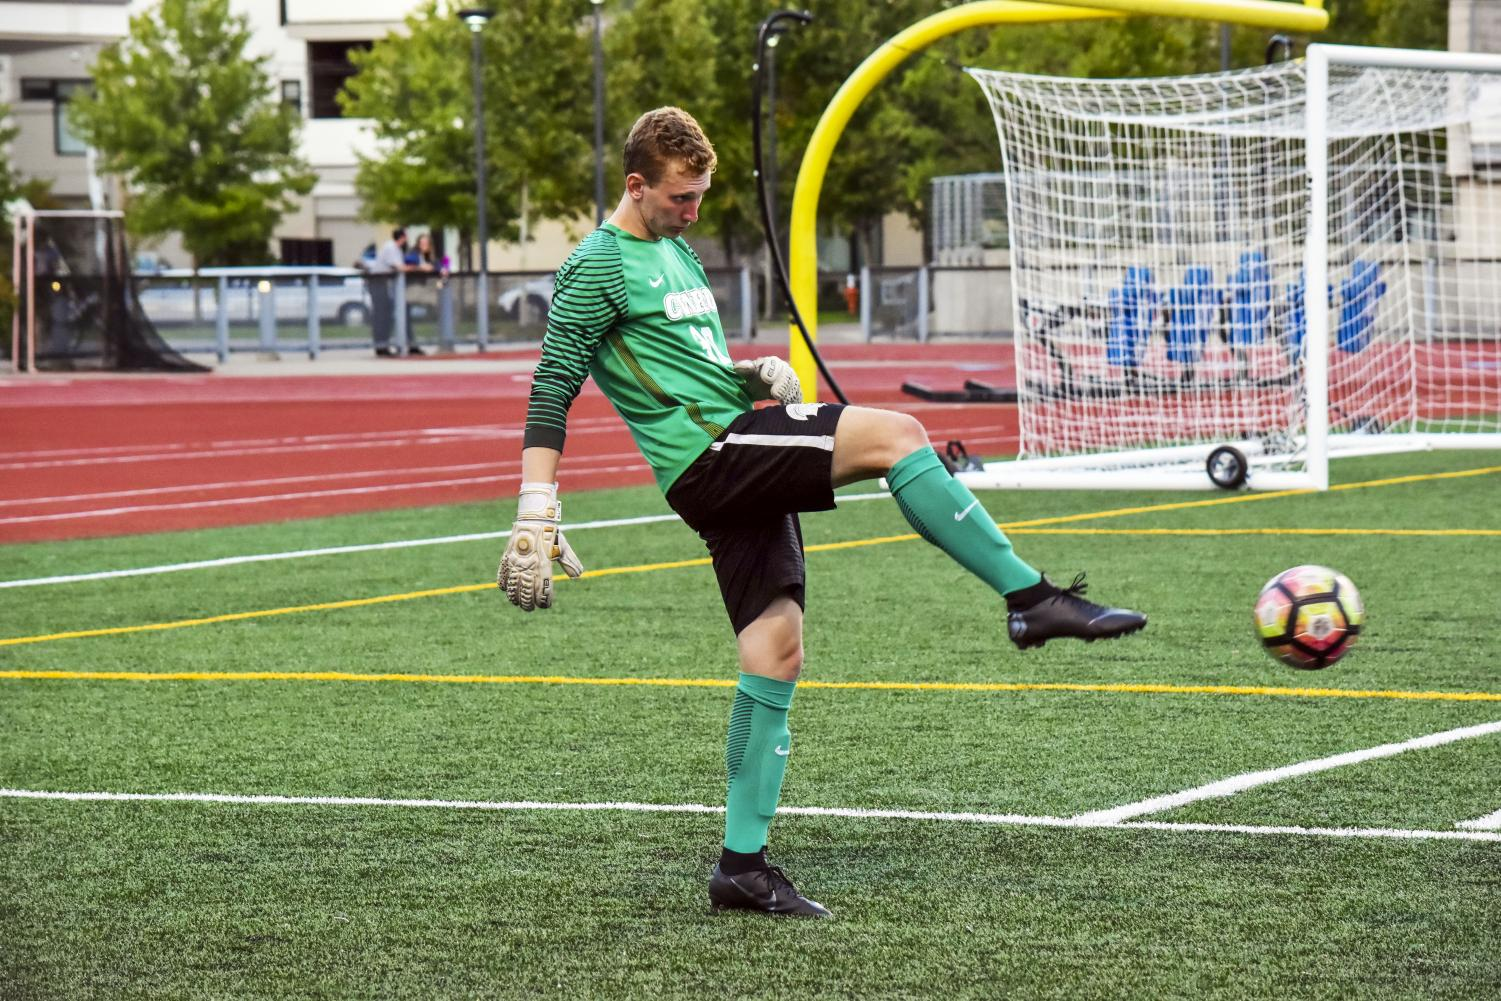 First-year goalkeeper Charlie Fink has been crucial to the Spartans' success this season. The 6'3